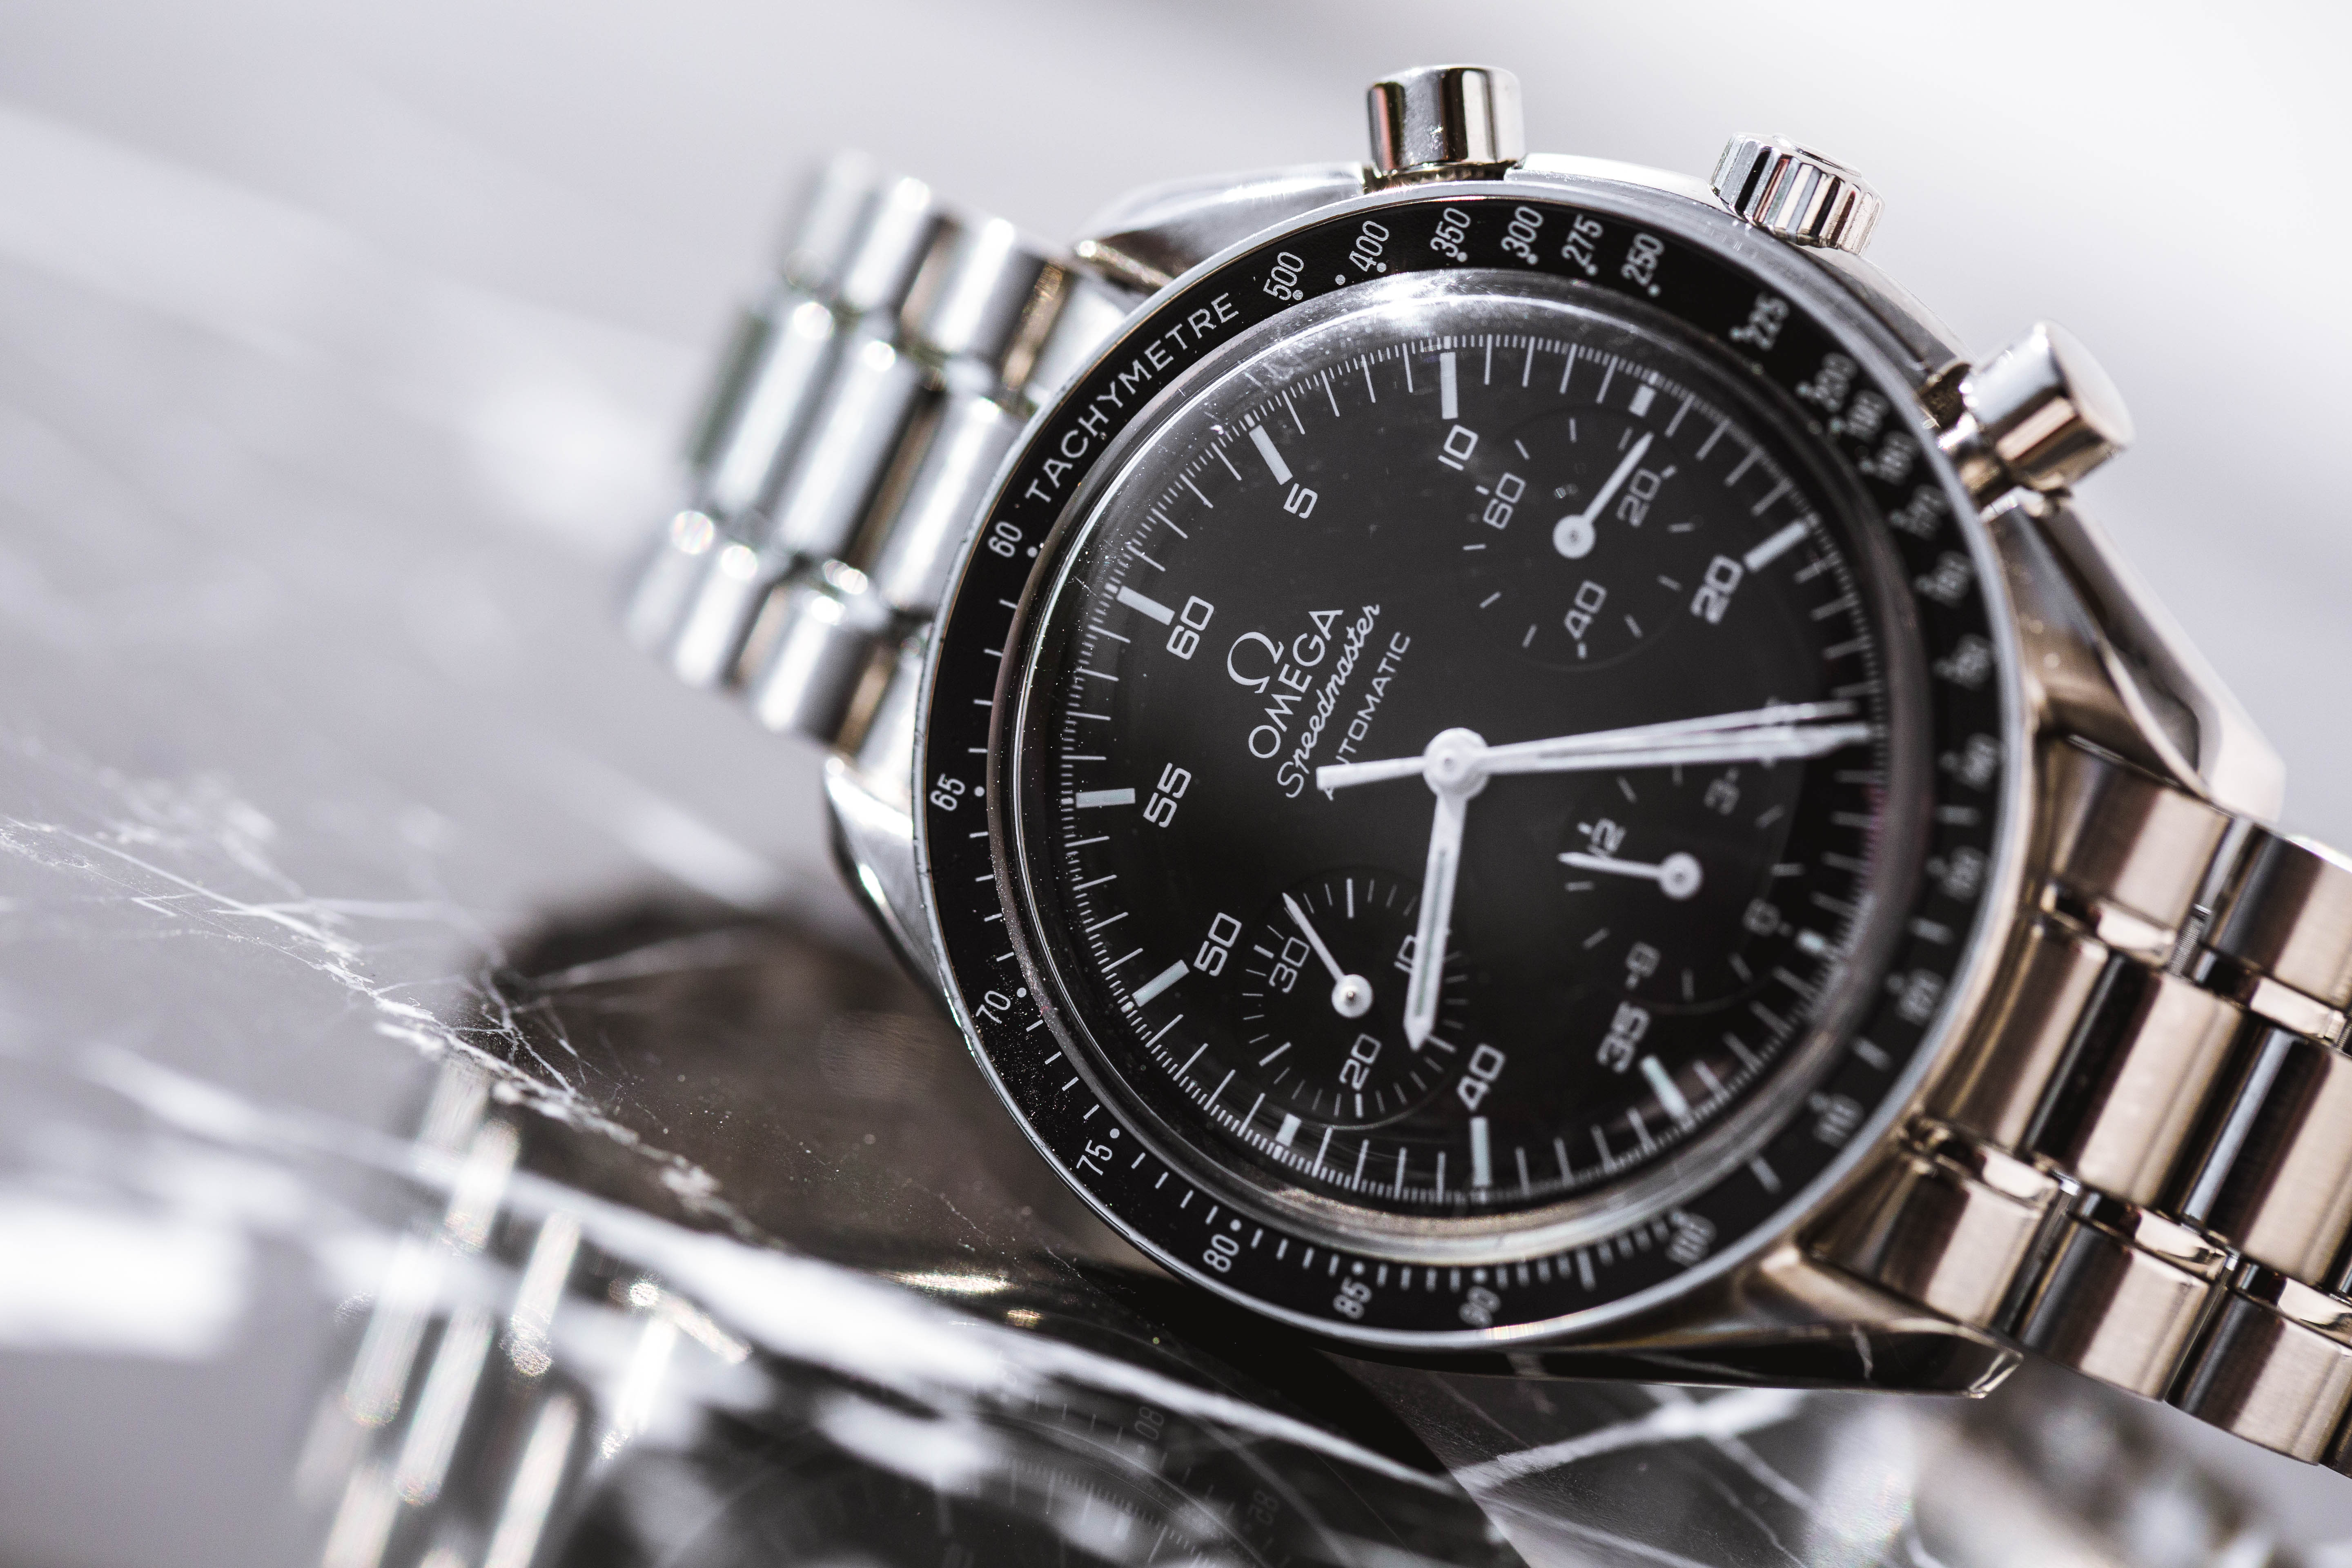 OMEGA Speedmaster Chronograph Copy Watch in Cheap Price